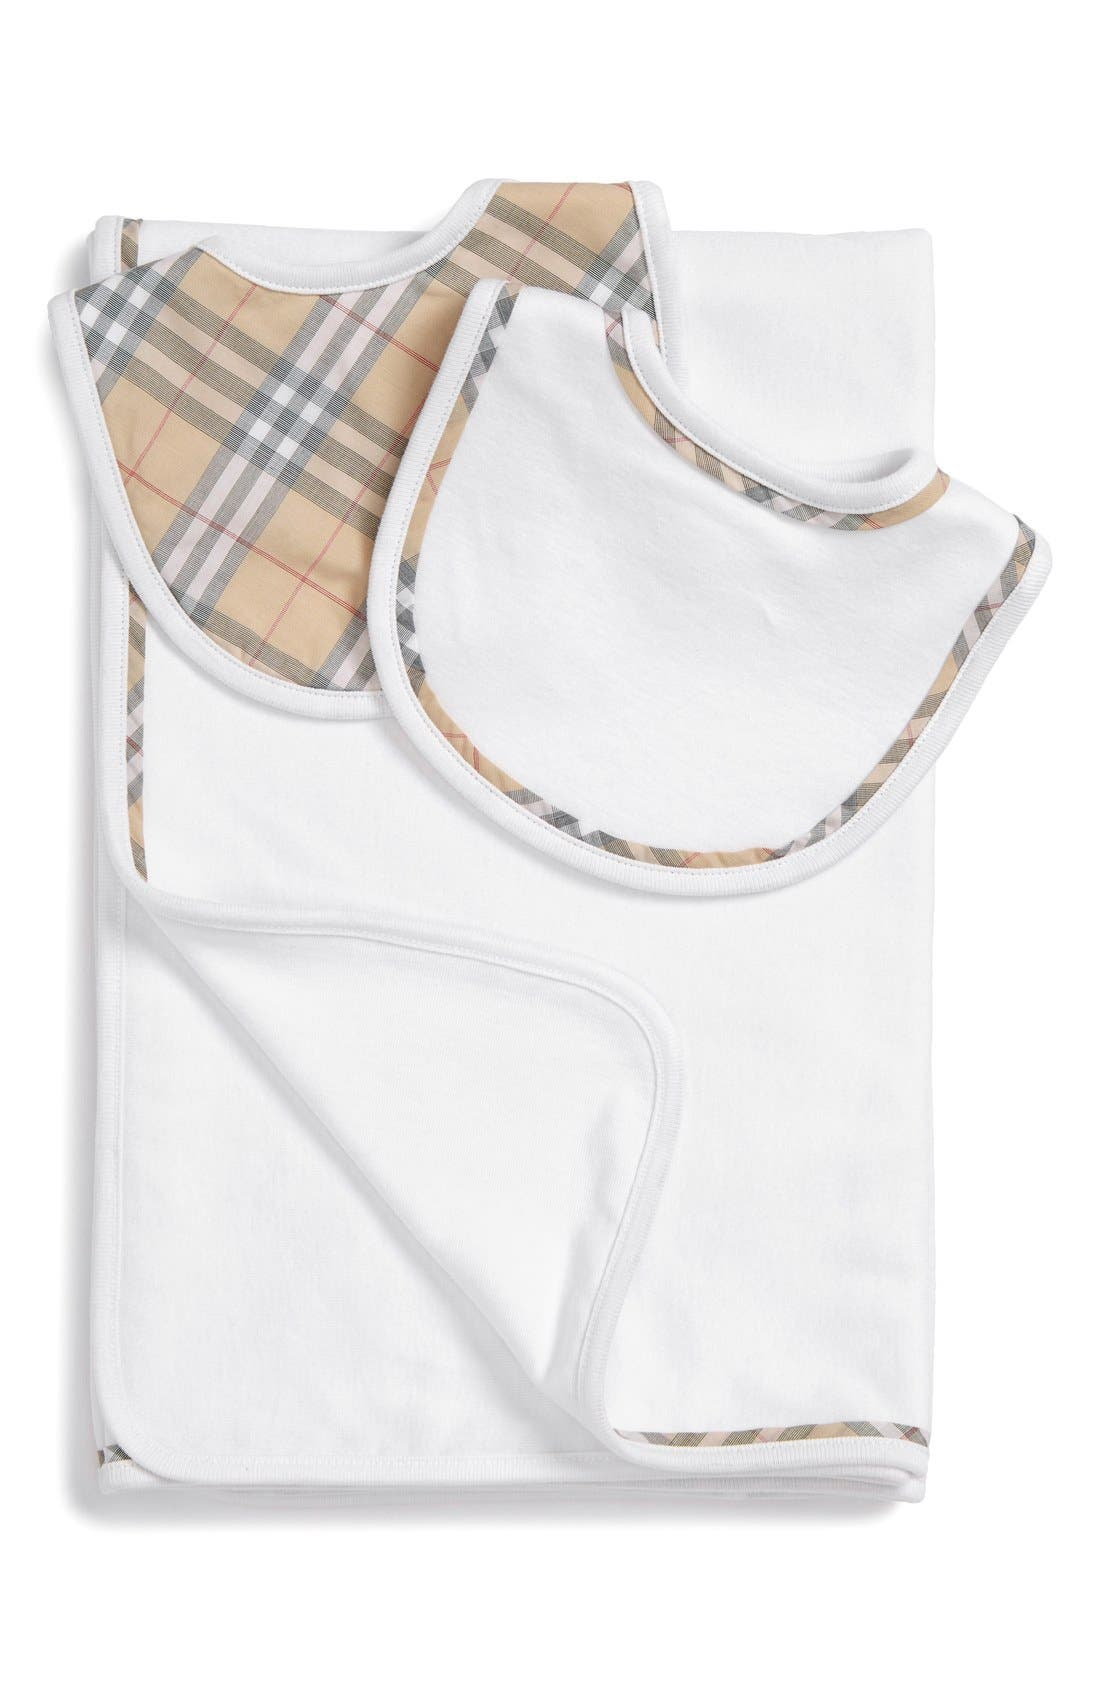 Burberry Blanket and Bibs Set (Baby)